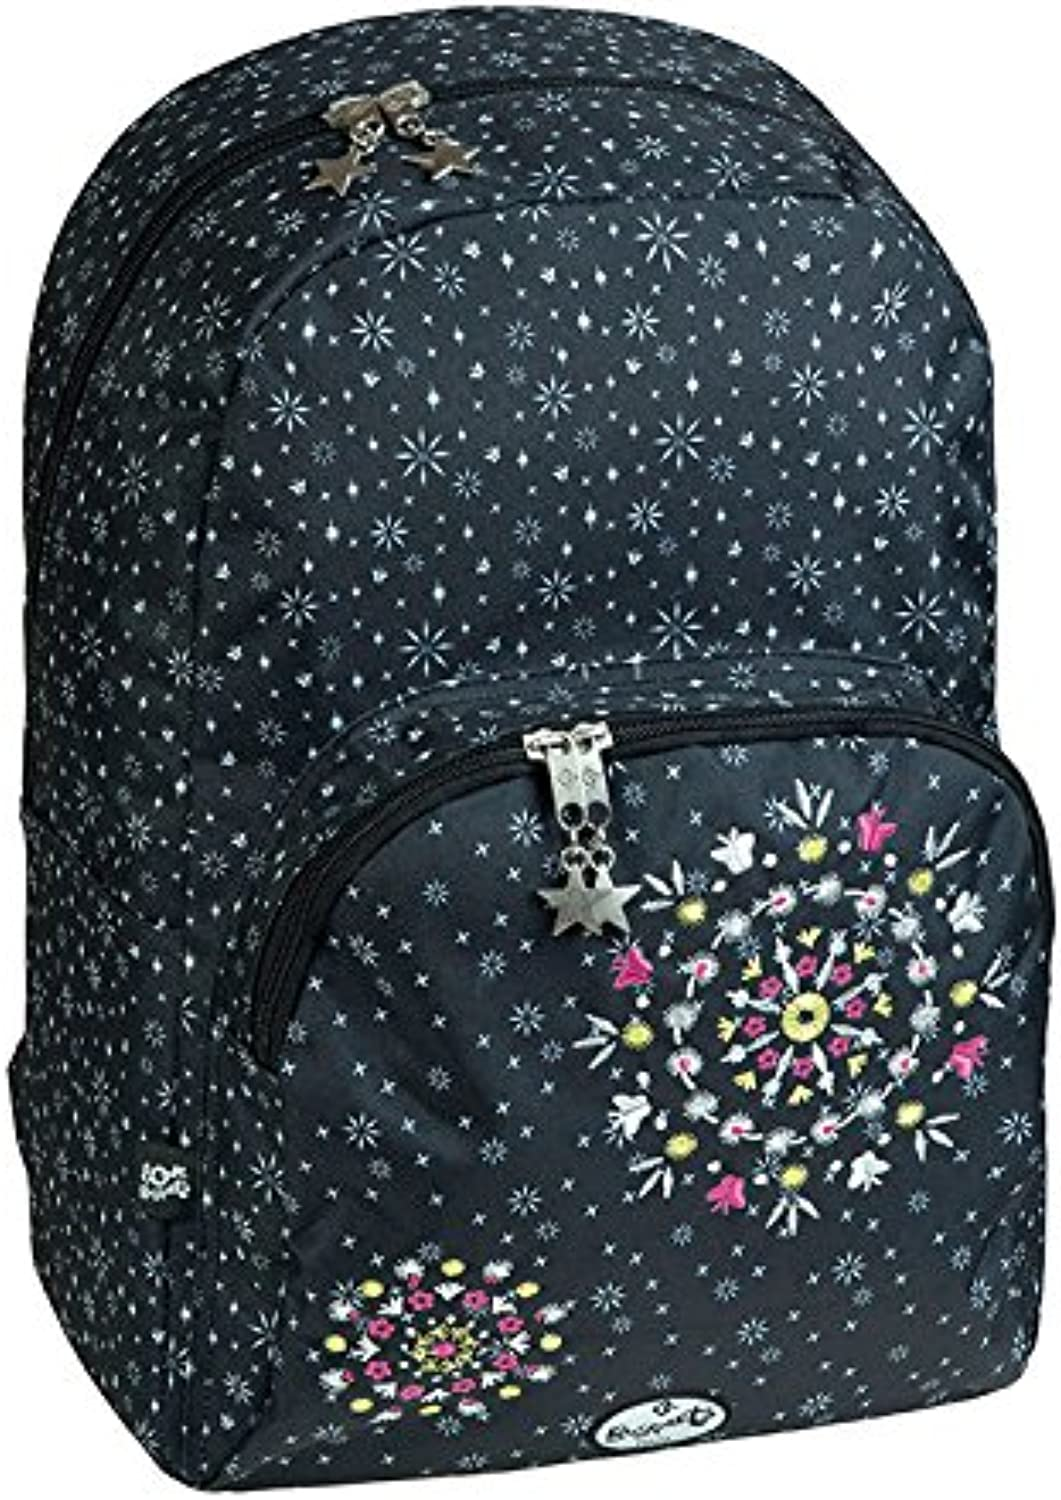 School backpack SPARKLY by BUSQUETS